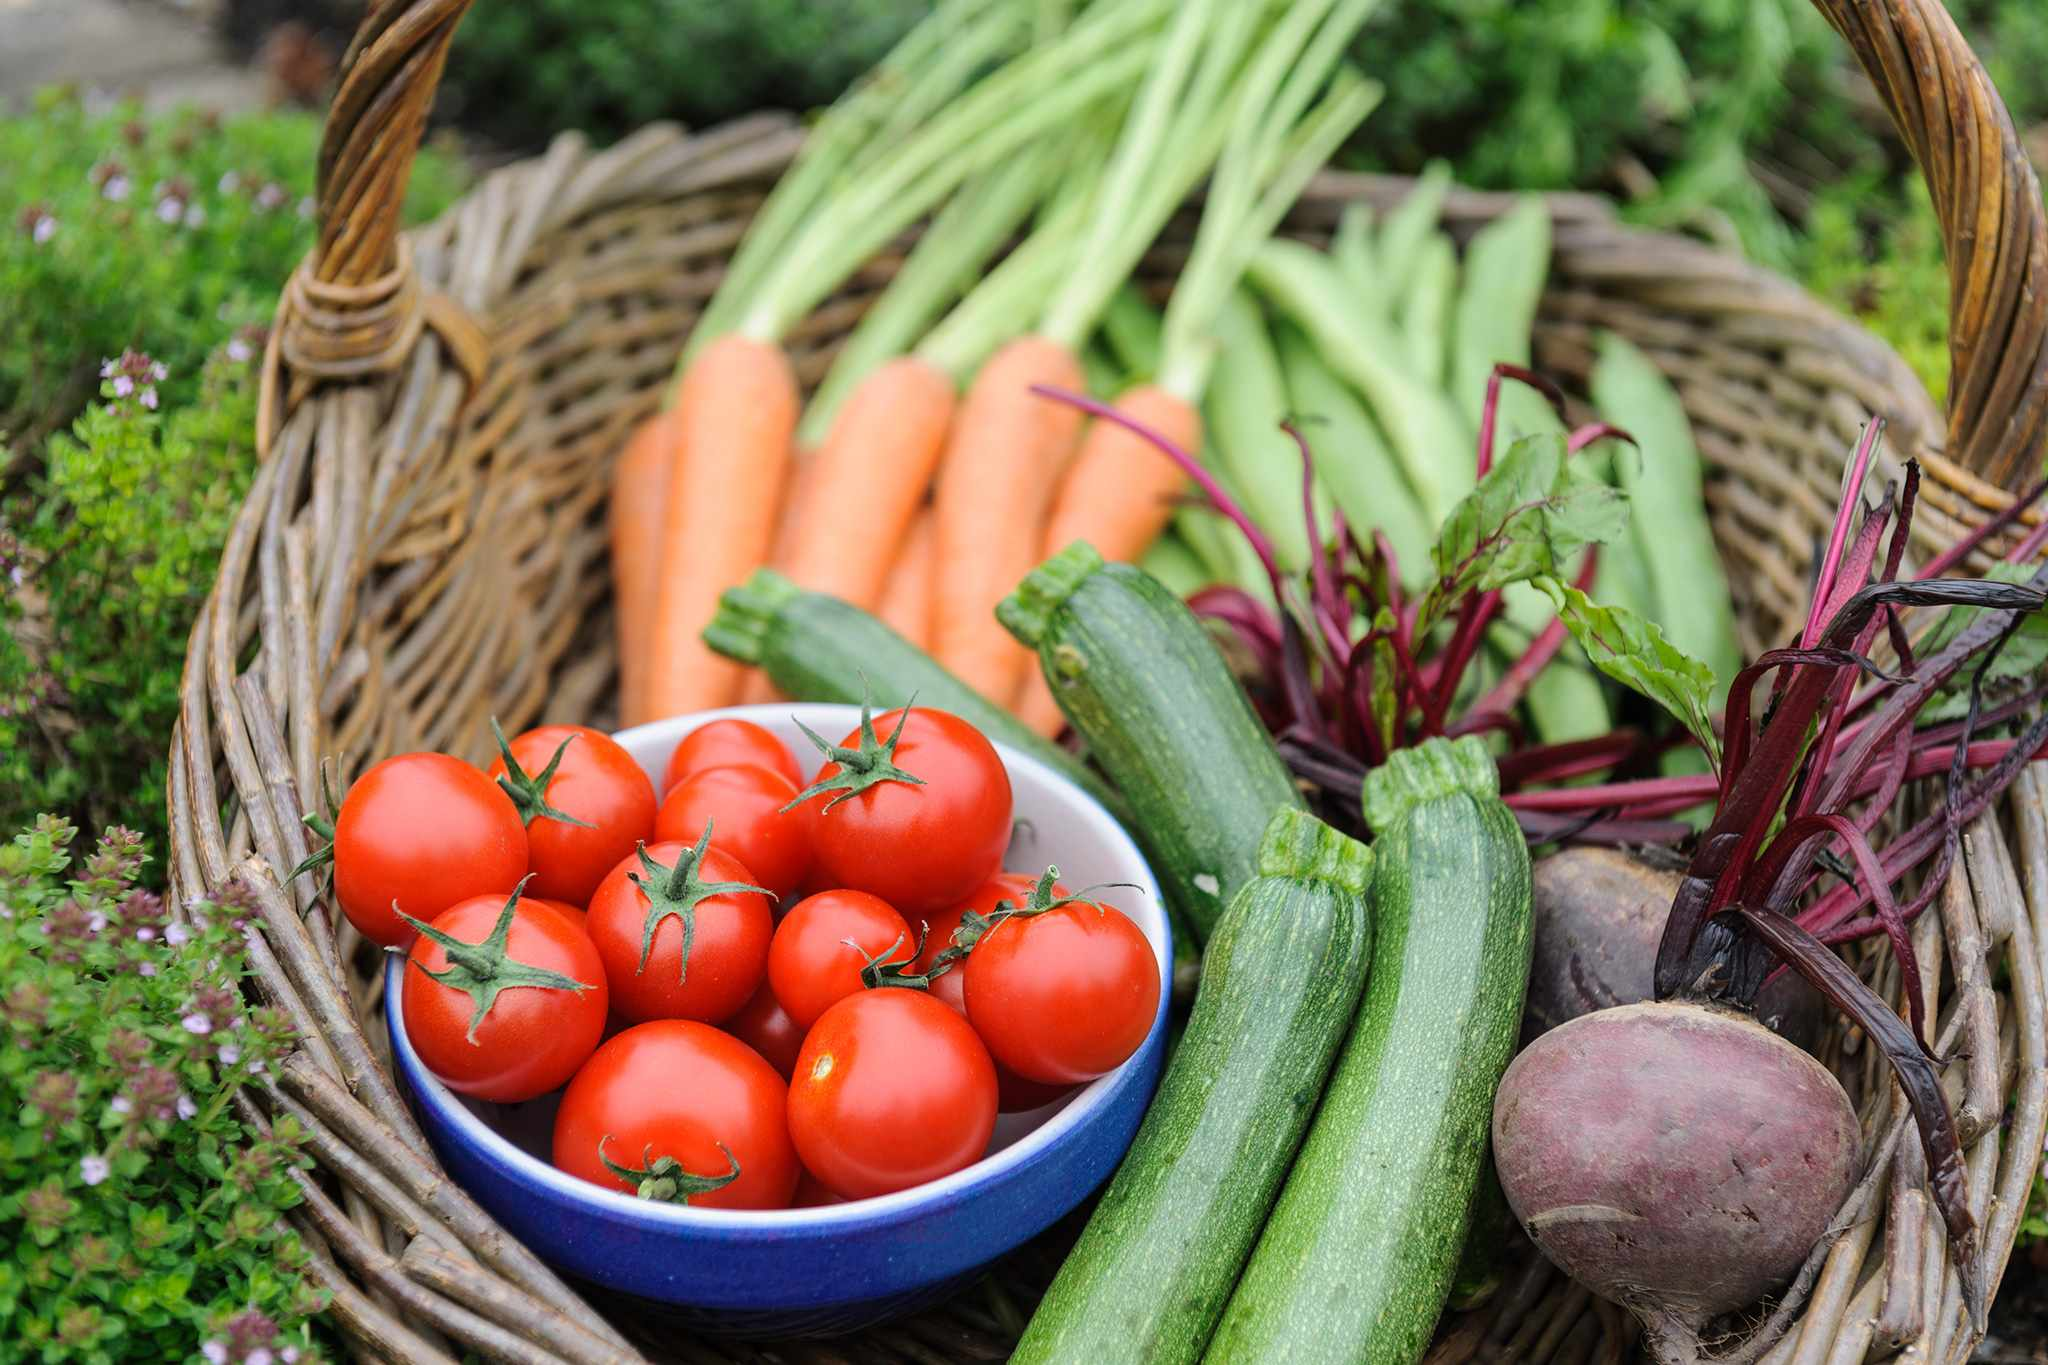 Basket of homegrown veg